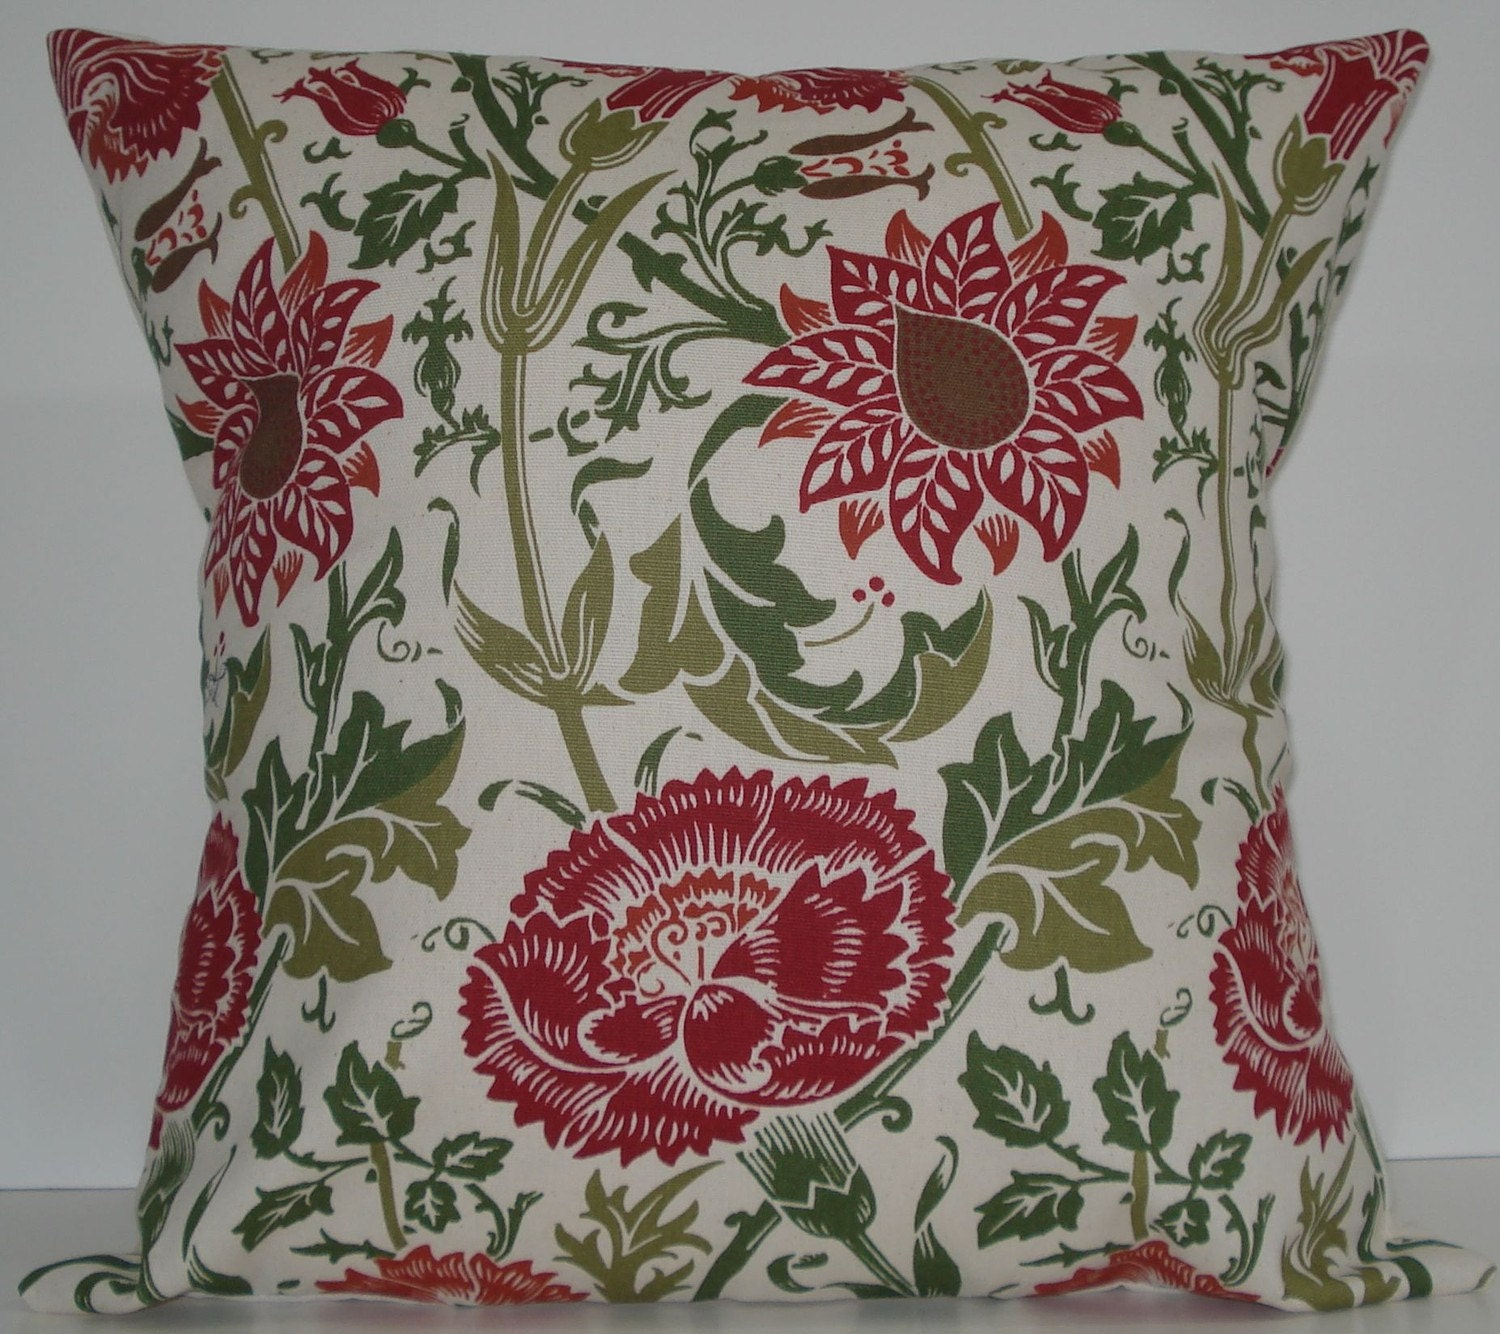 New 18x18 inch Designer Handmade Pillow Case in red, and two shades of green on natural.